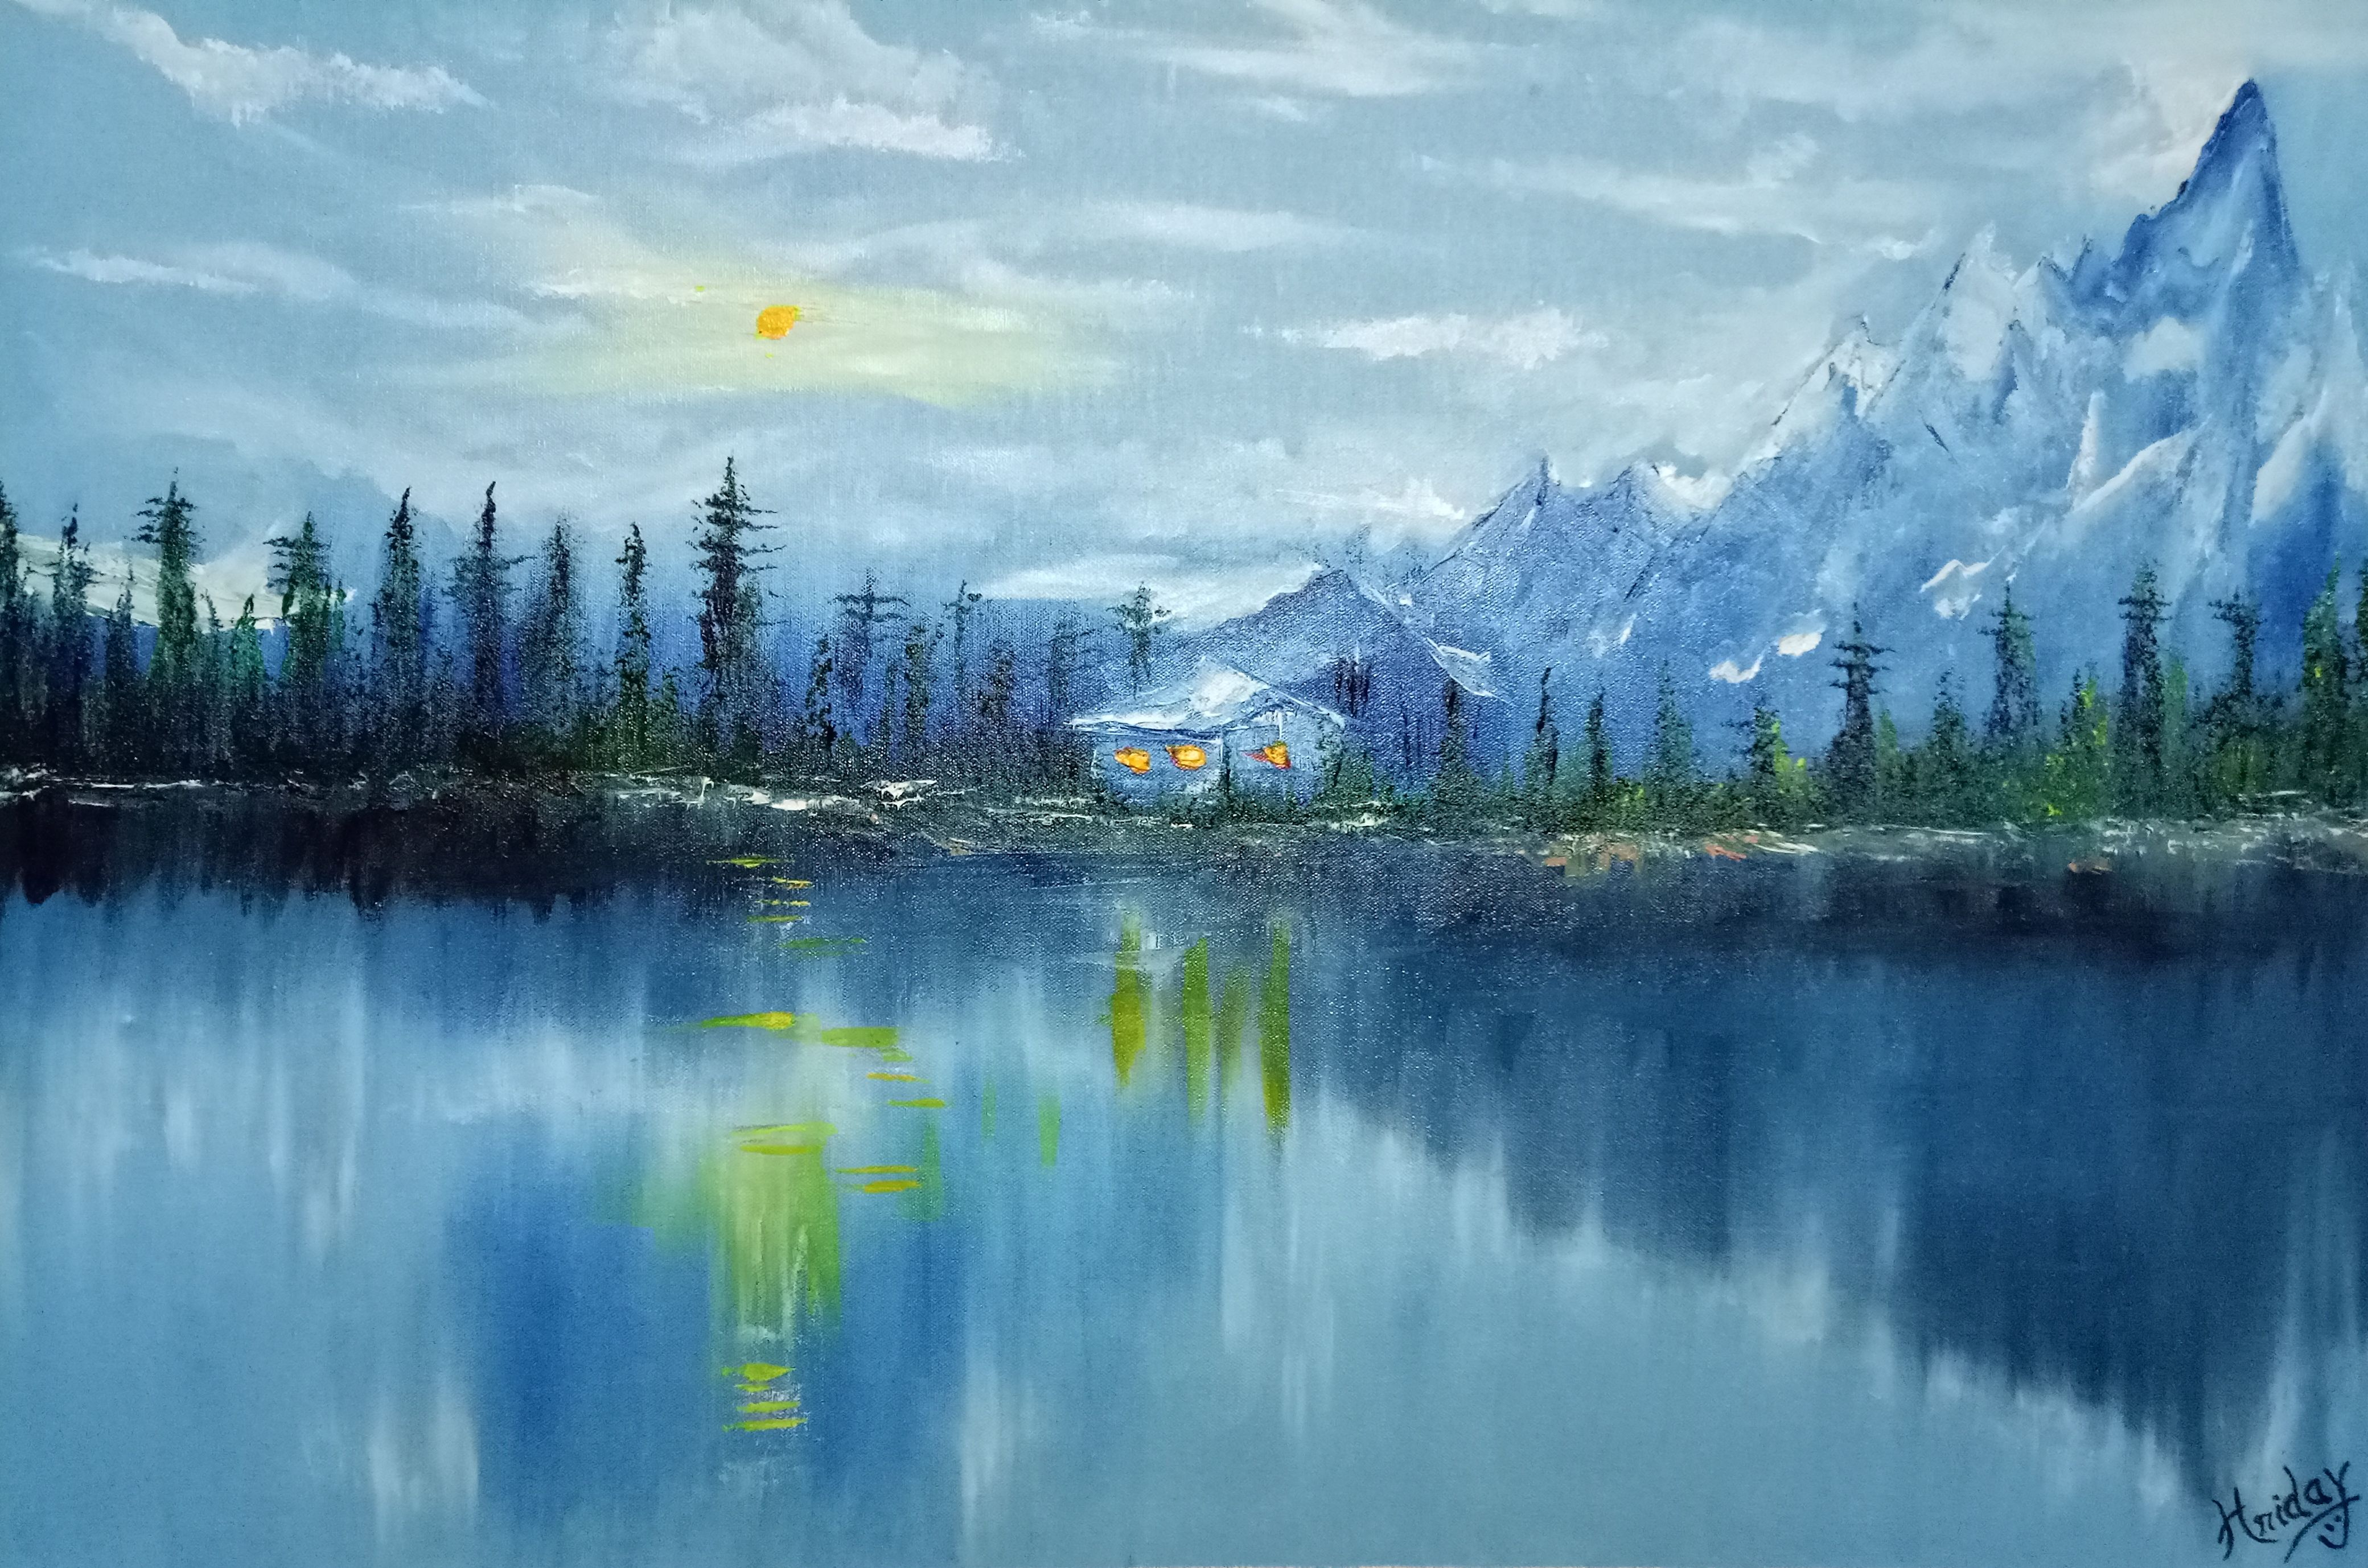 A Masterpiece Which Gives A View Of Mountain S Beauty Dusted With Snow The Hues Of White And Blues Bring Icy Guise T Nature Paintings Online Painting Painting